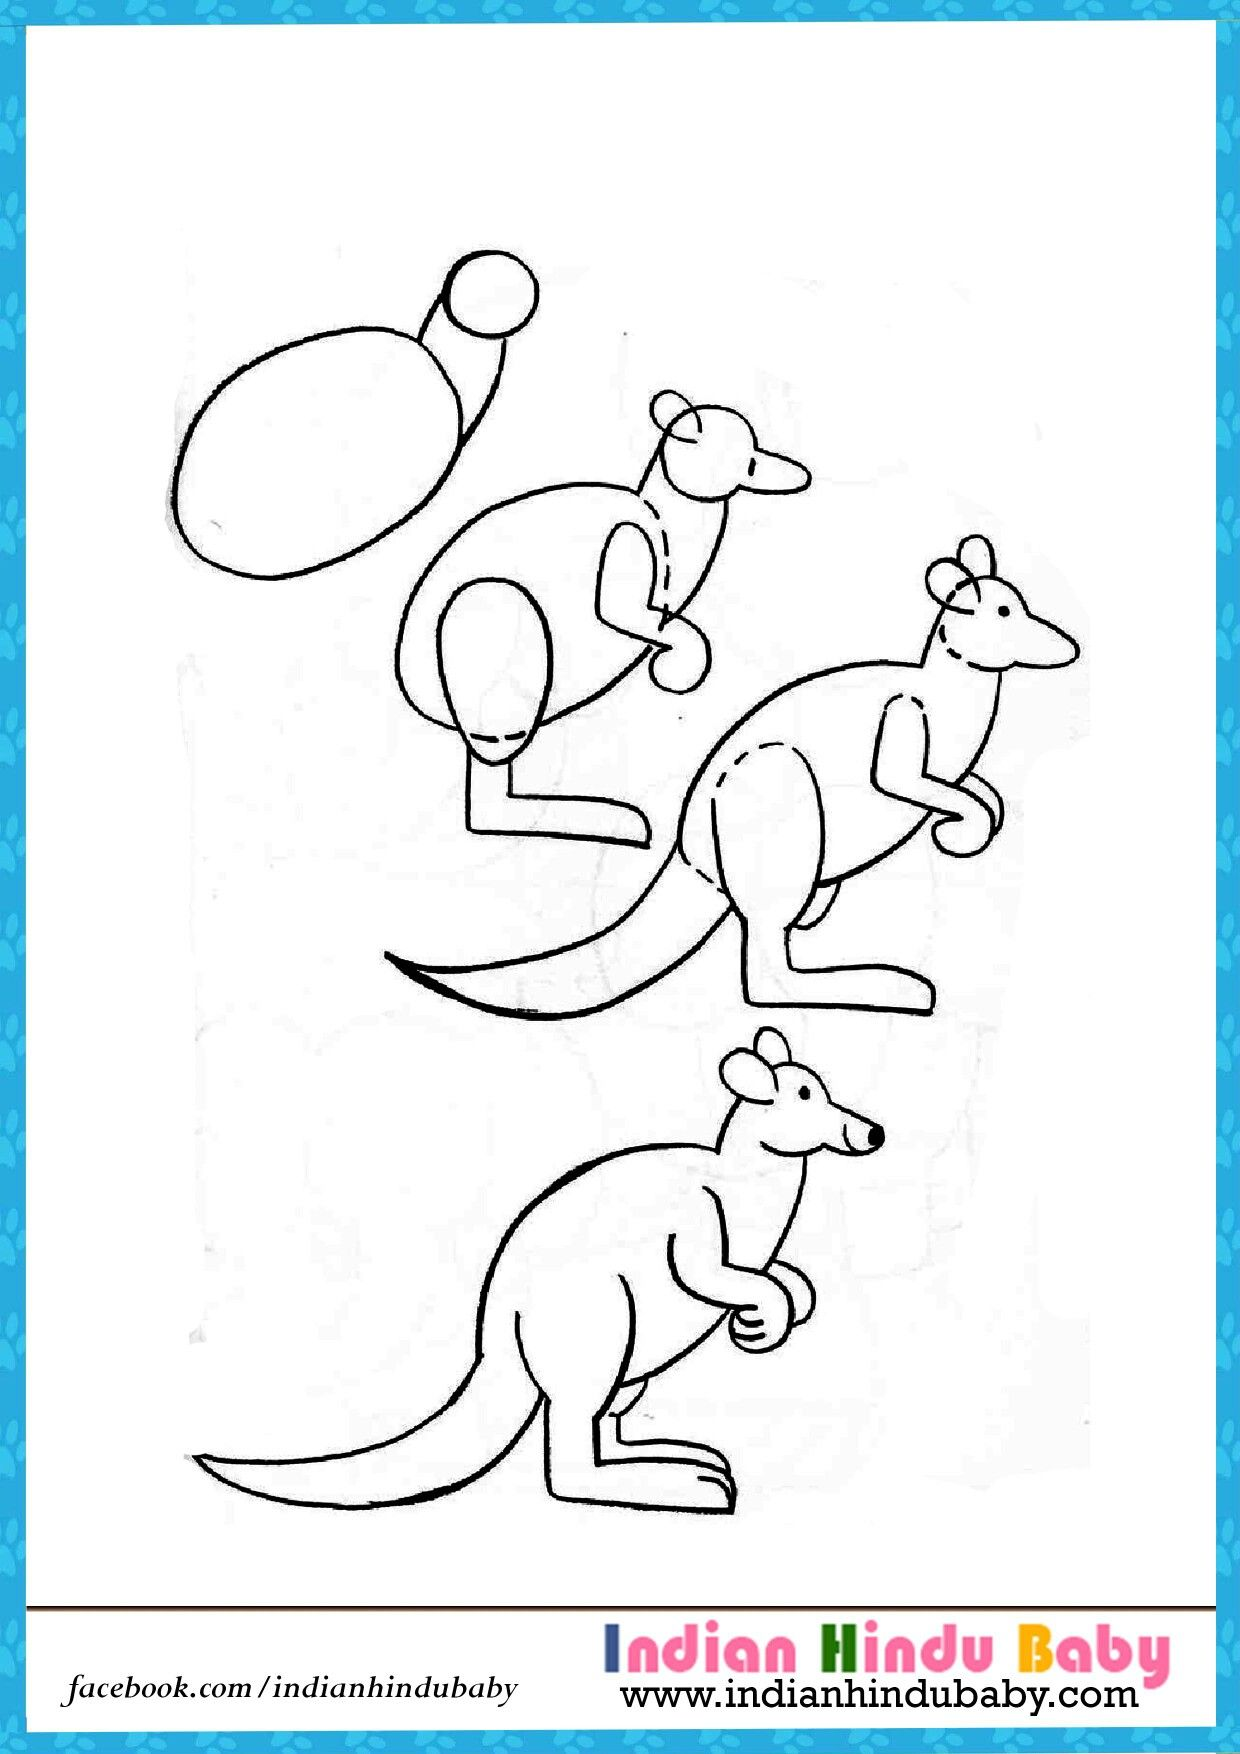 Drawing a kangaroo is easy even for a child, if you use the technique of step-by-step drawing